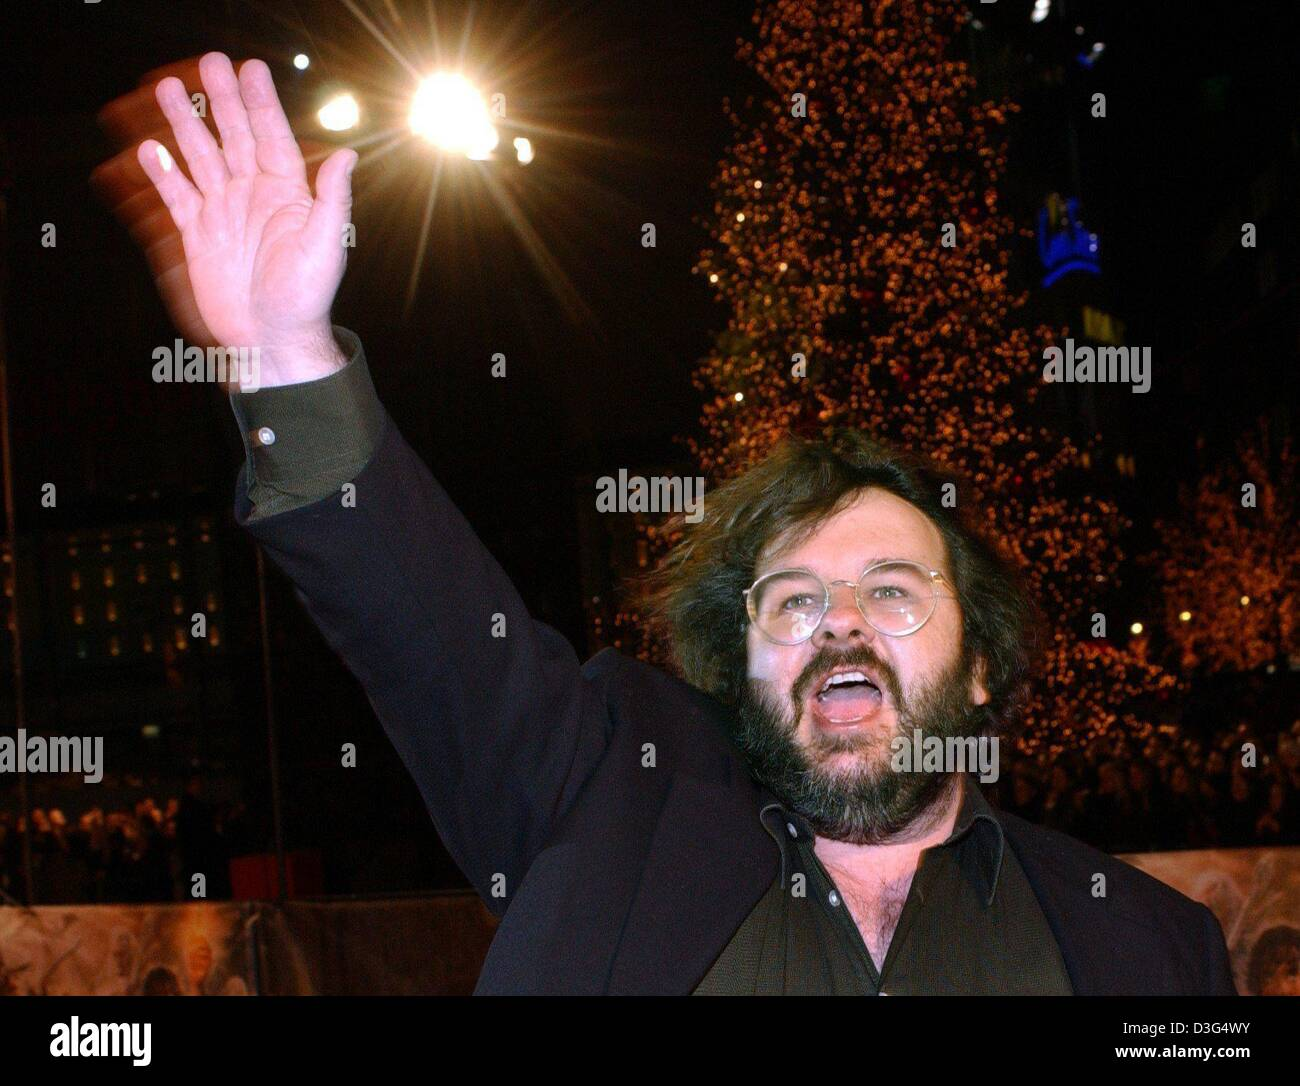 98f268cba51b (dpa) - Film director Peter Jackson from New Zealand arrives at the  European premiere of the film 'Lord of the Rings - The Return of the King'  in Berlin, ...